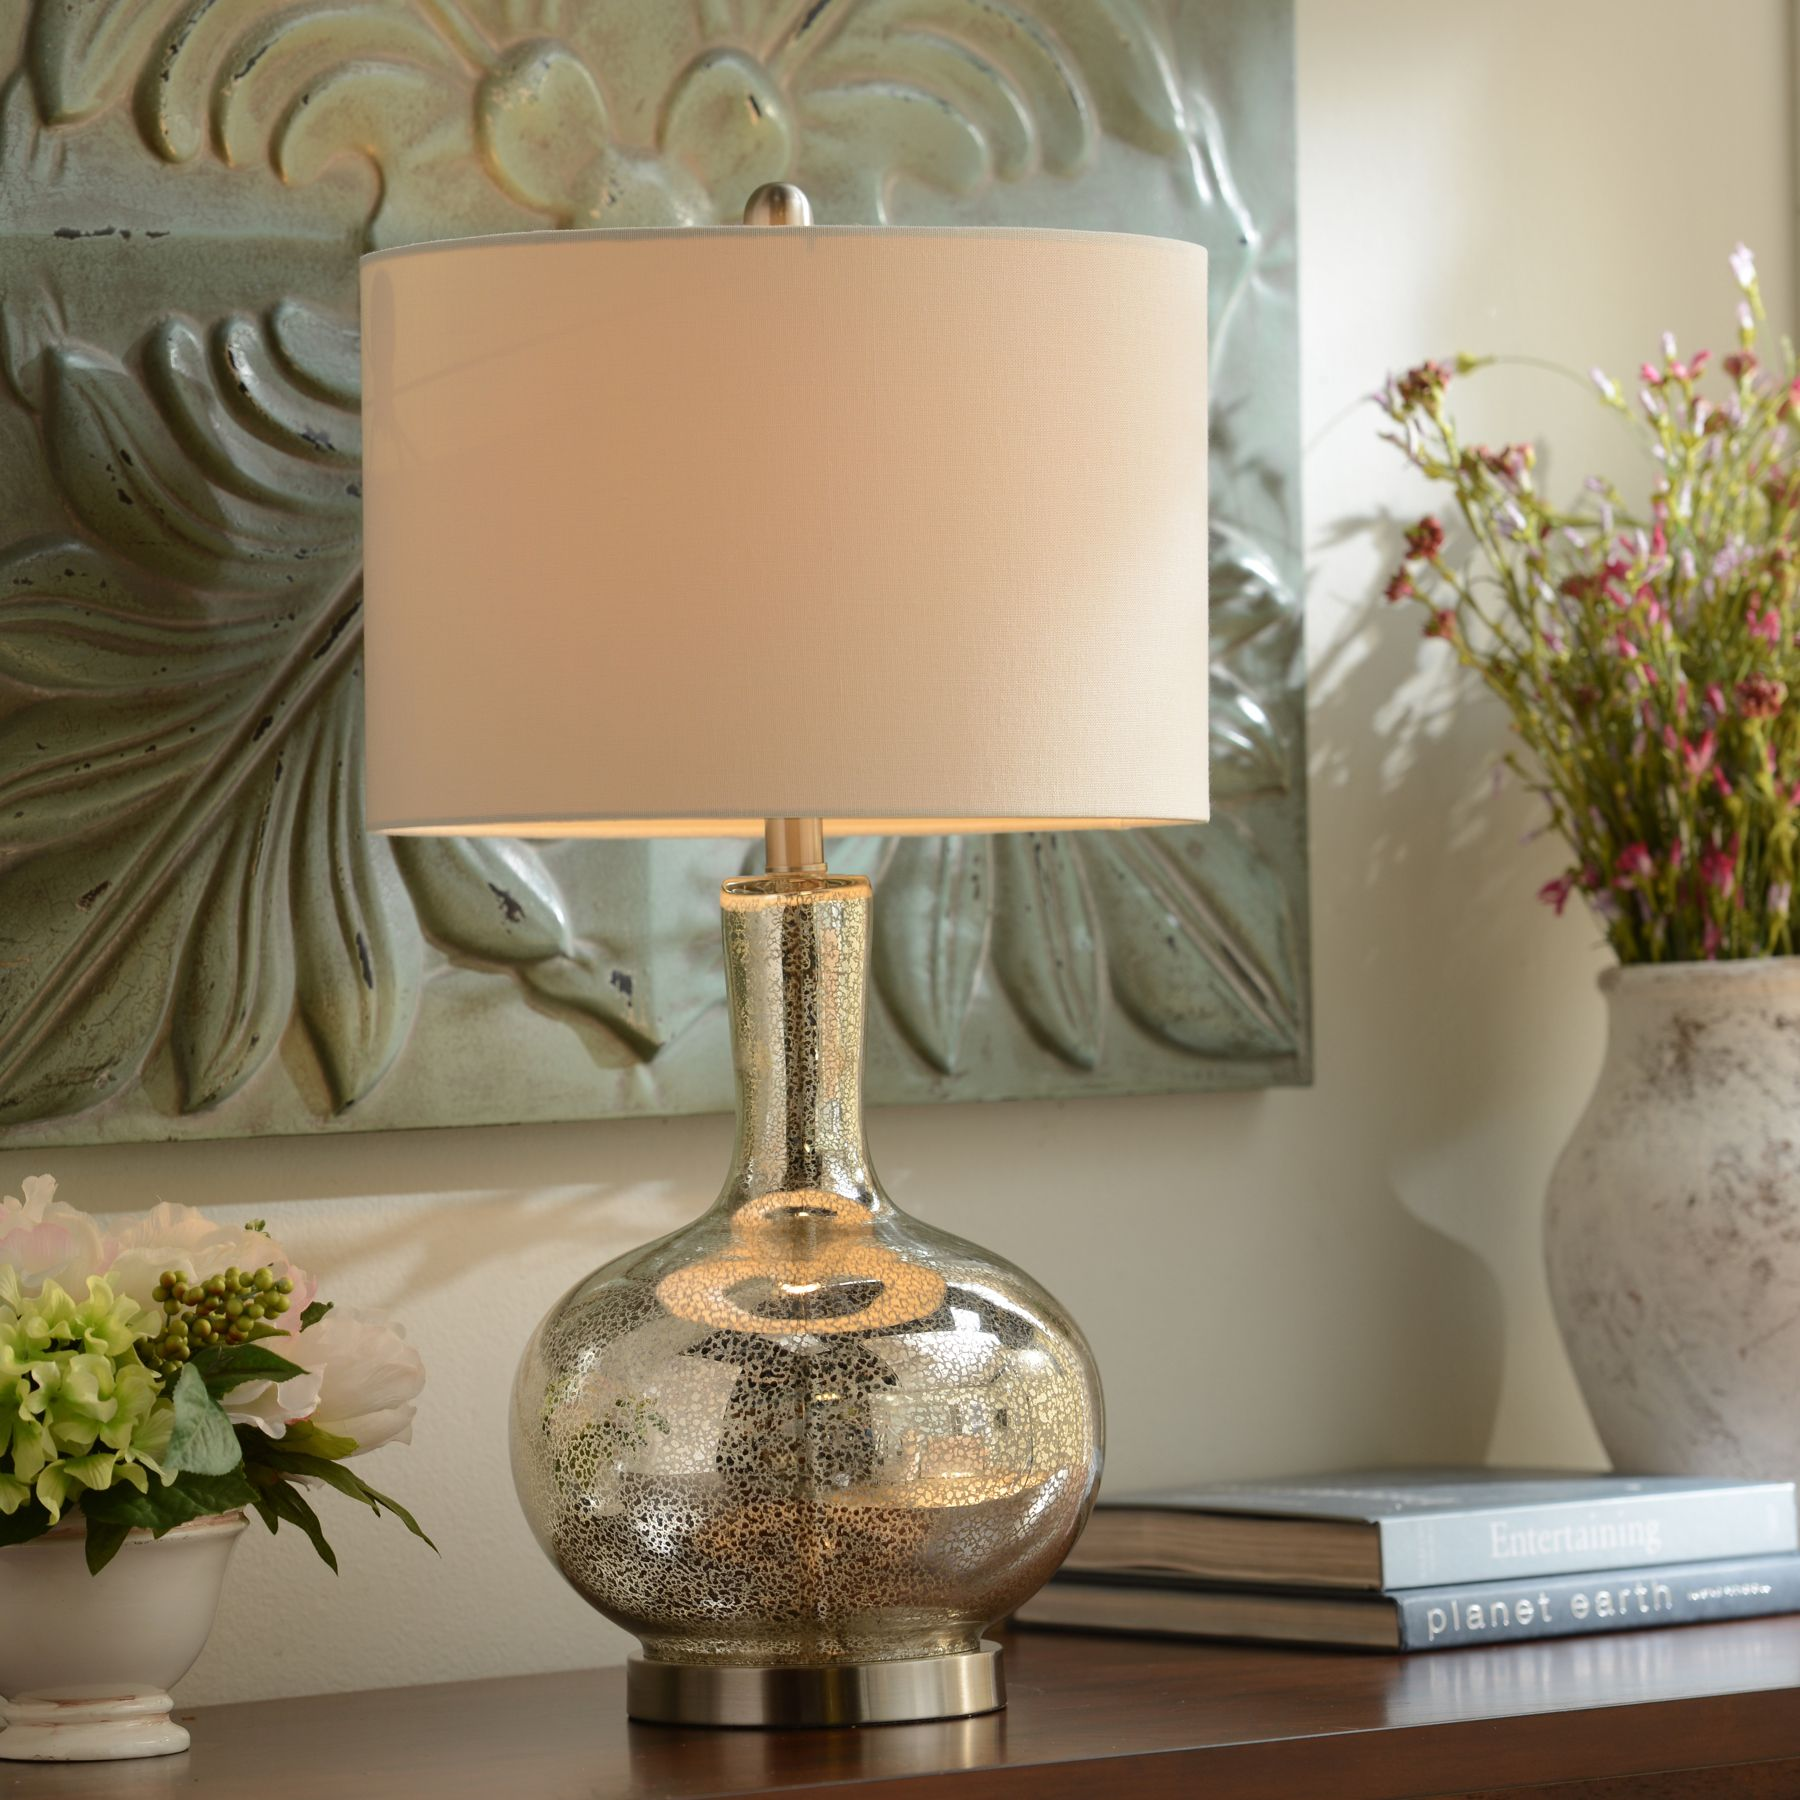 Step up your style with mercury glass lamps Available in both gold